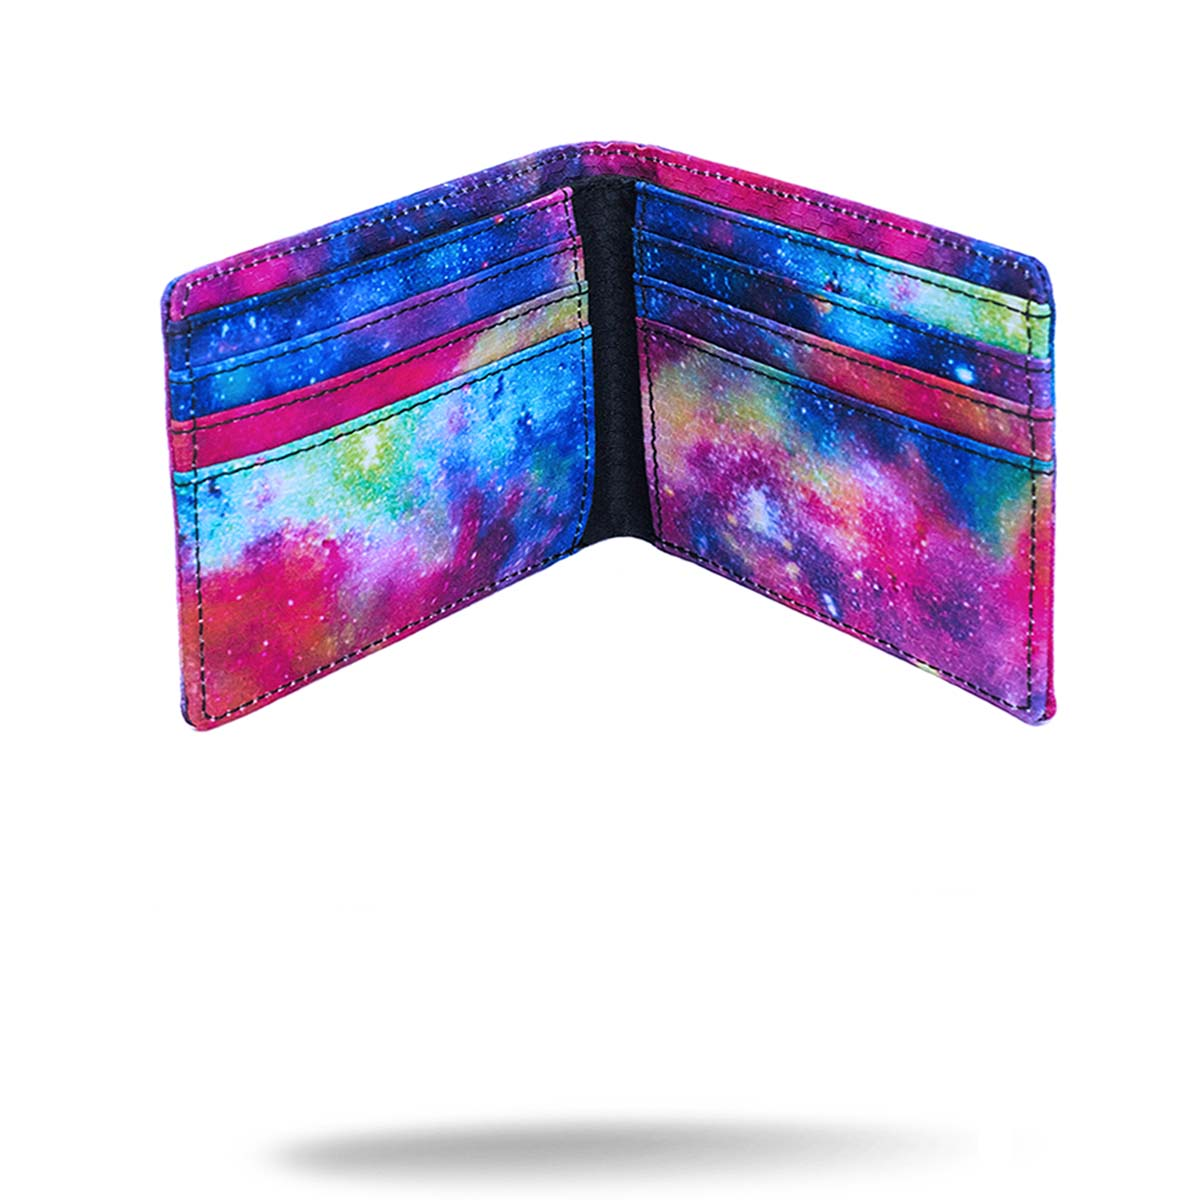 Inside view of galaxy printed wallet